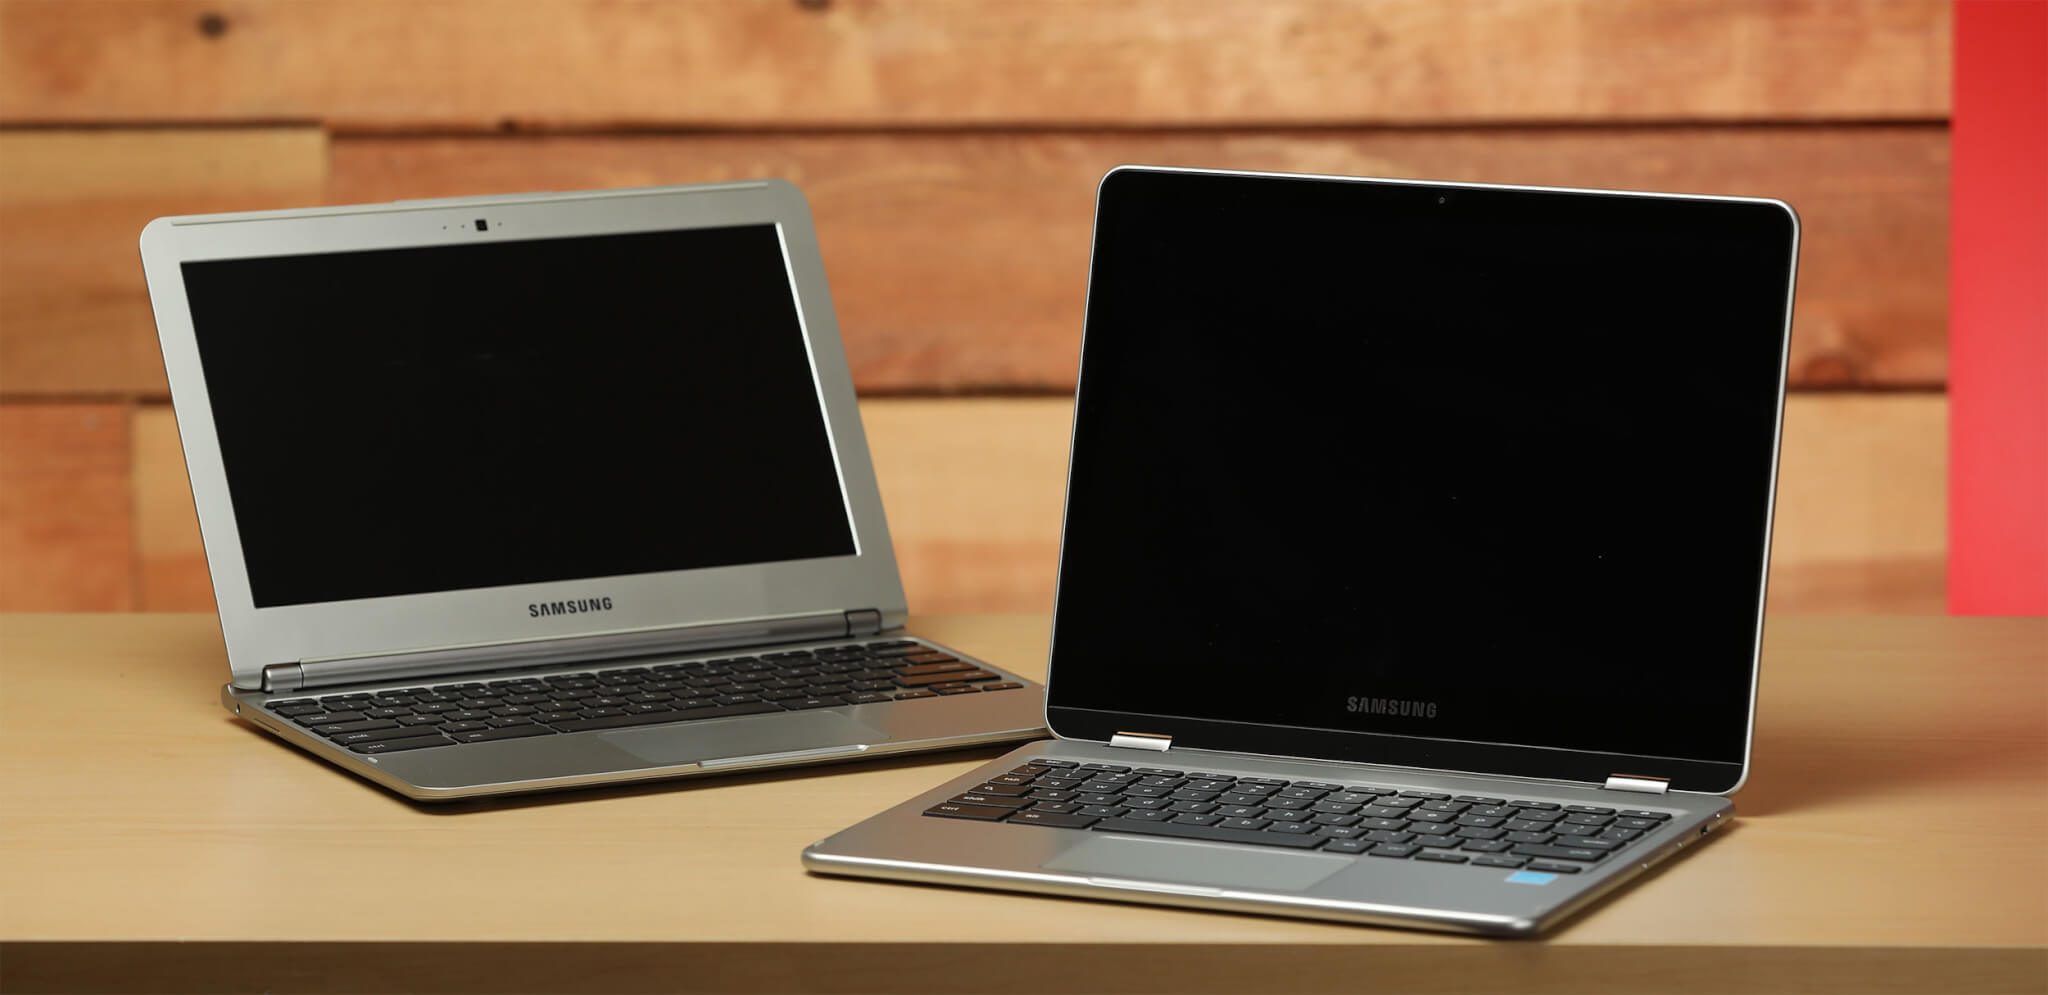 The first Samsung Chromebook (left) and the Chromebook Pro (right).